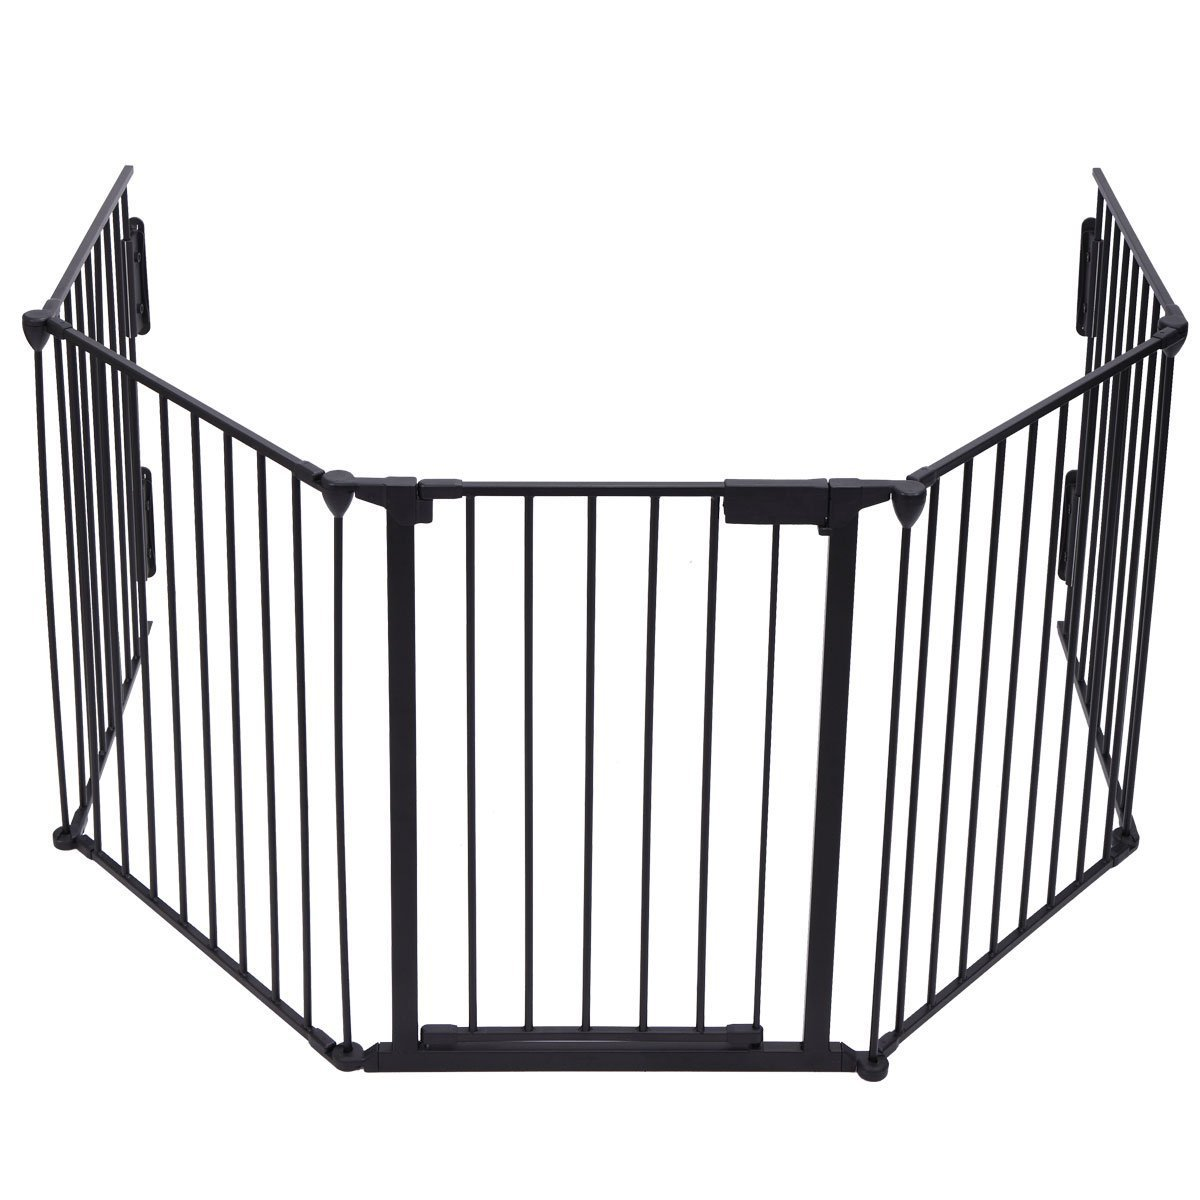 JAXPETY 25''x 30'' 5 Panel Baby Safety Fence Hearth Gate BBQ Fire Gate Fireplace Metal Plastic Pet Dog Cat